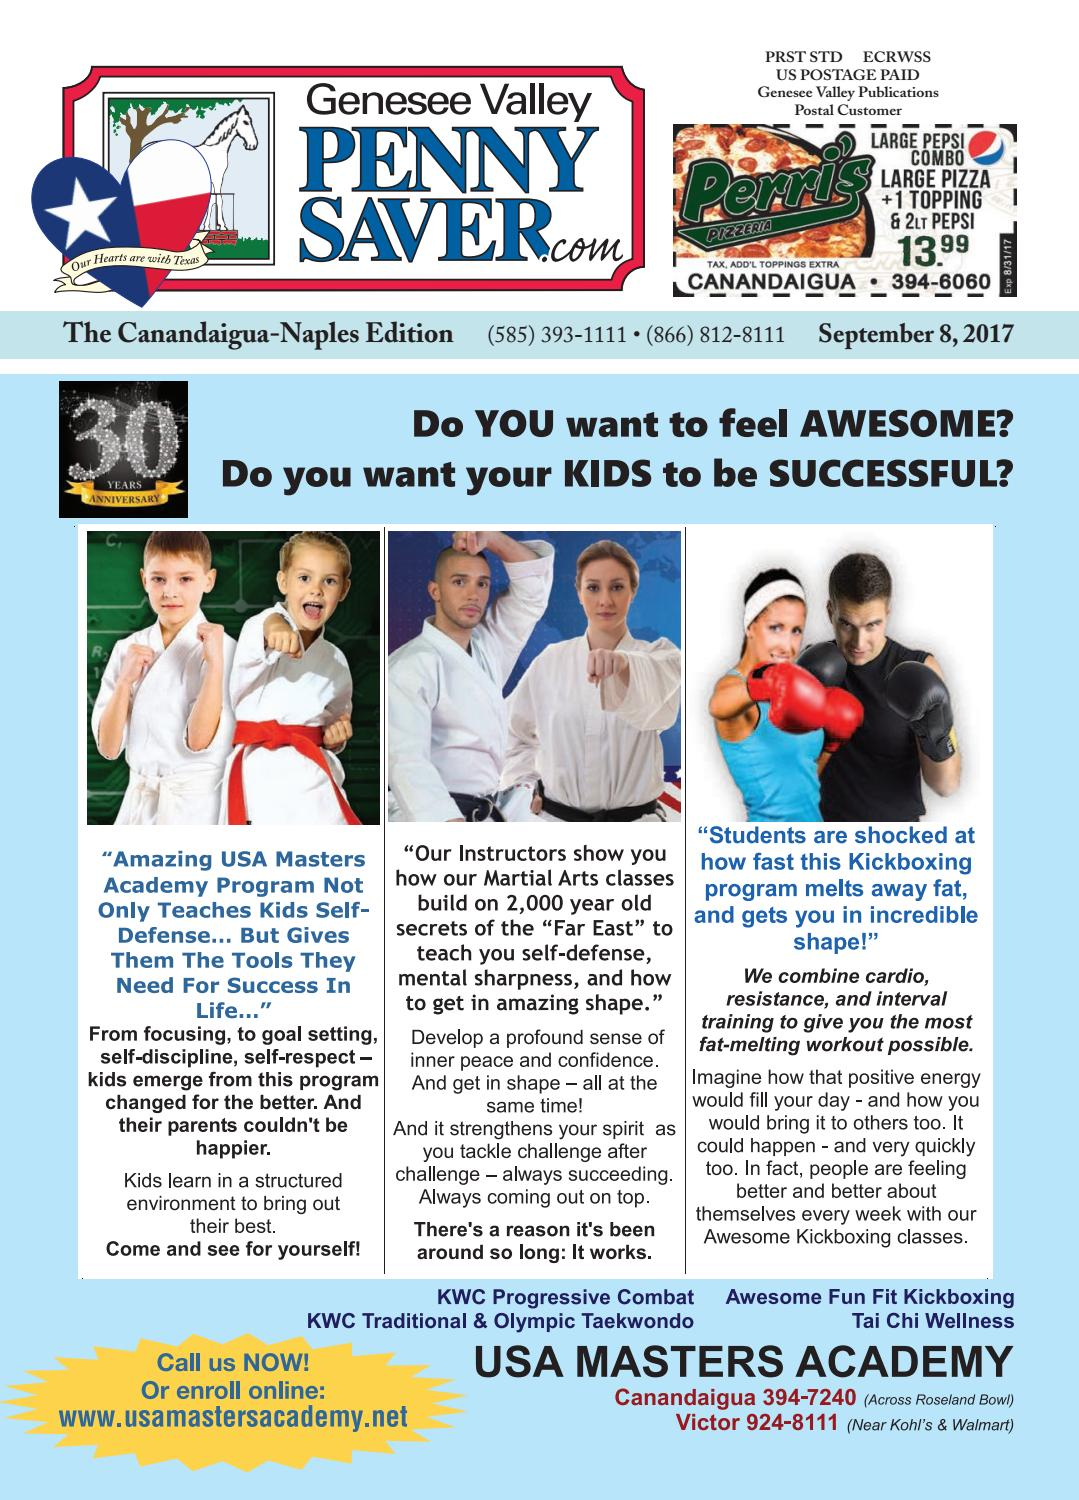 f66ce661c The Genesee Valley Penny Saver Canandaigua-Naples Edition 9/8/17 by Genesee  Valley Publications - issuu